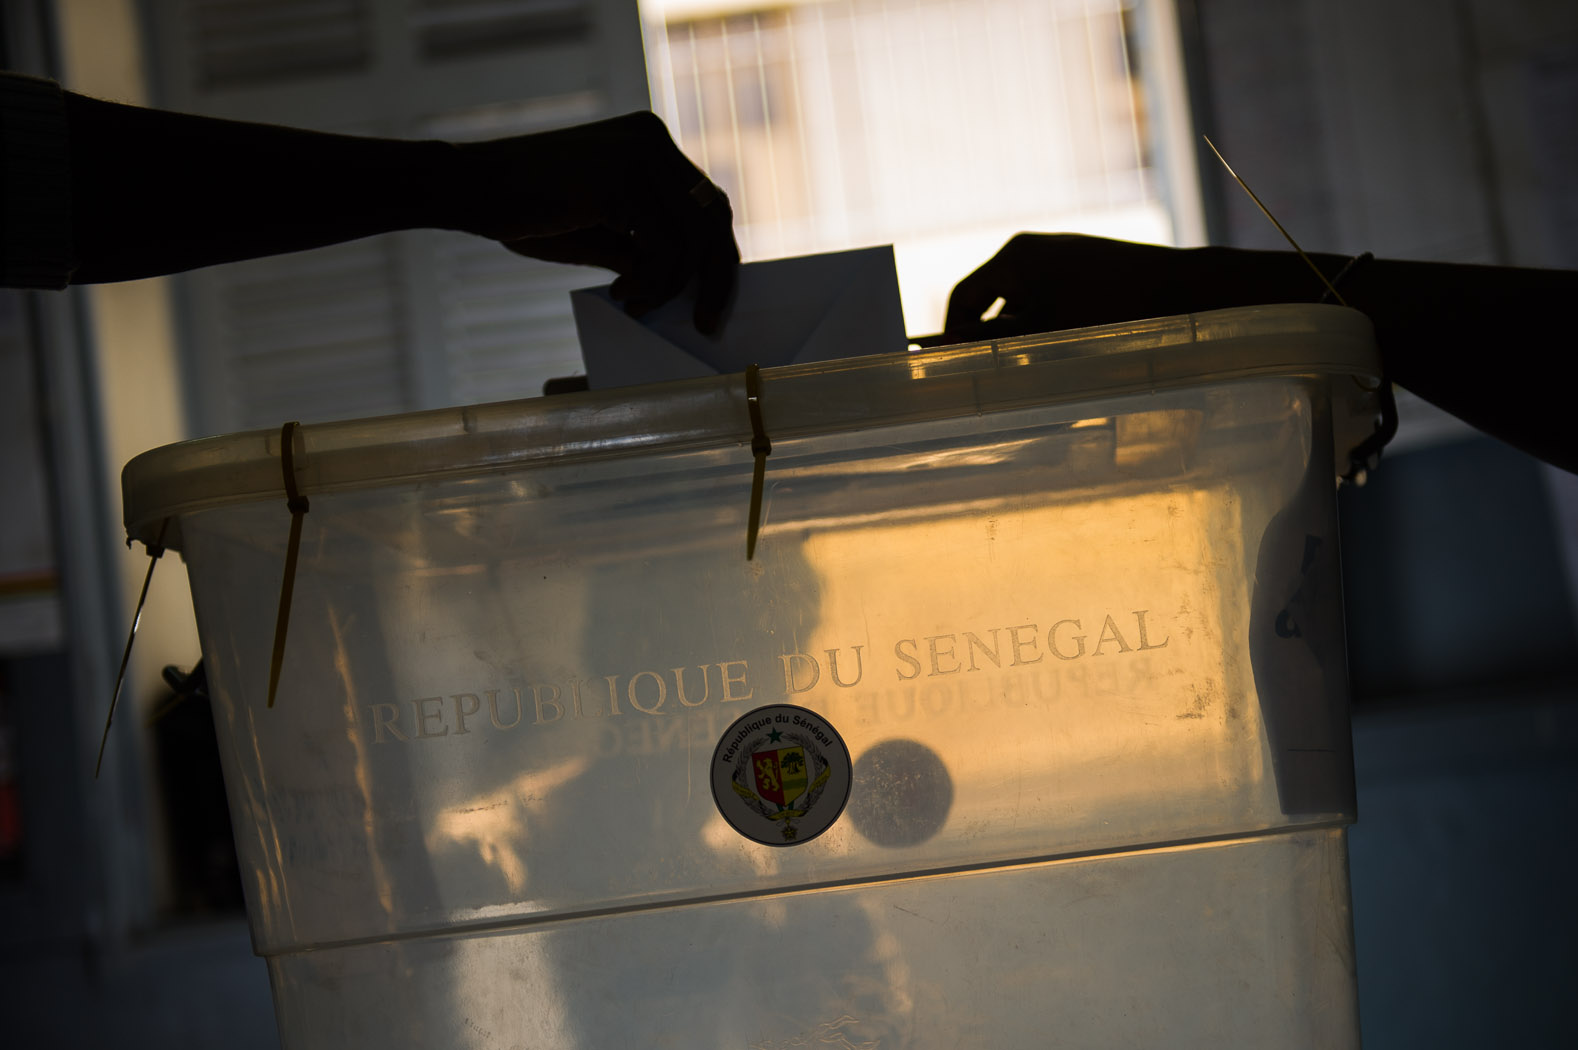 The Senegalese pride themselves on being a bastion of democracy in the region.